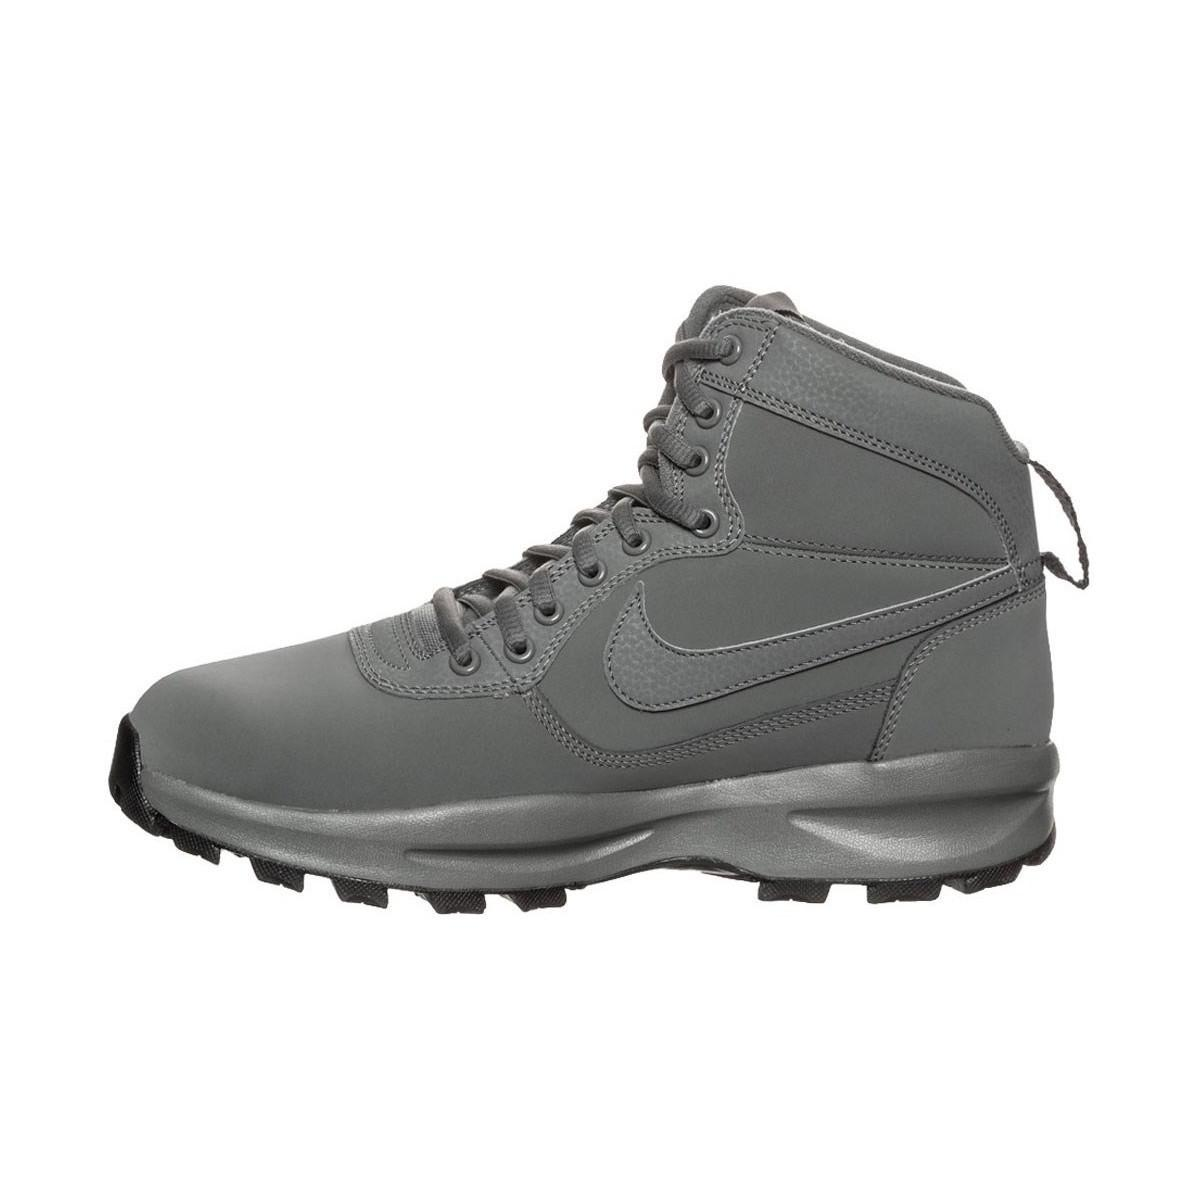 b930c7f4cd9 Nike Manoadome Men s Shoes (high-top Trainers) In Grey in Gray for ...